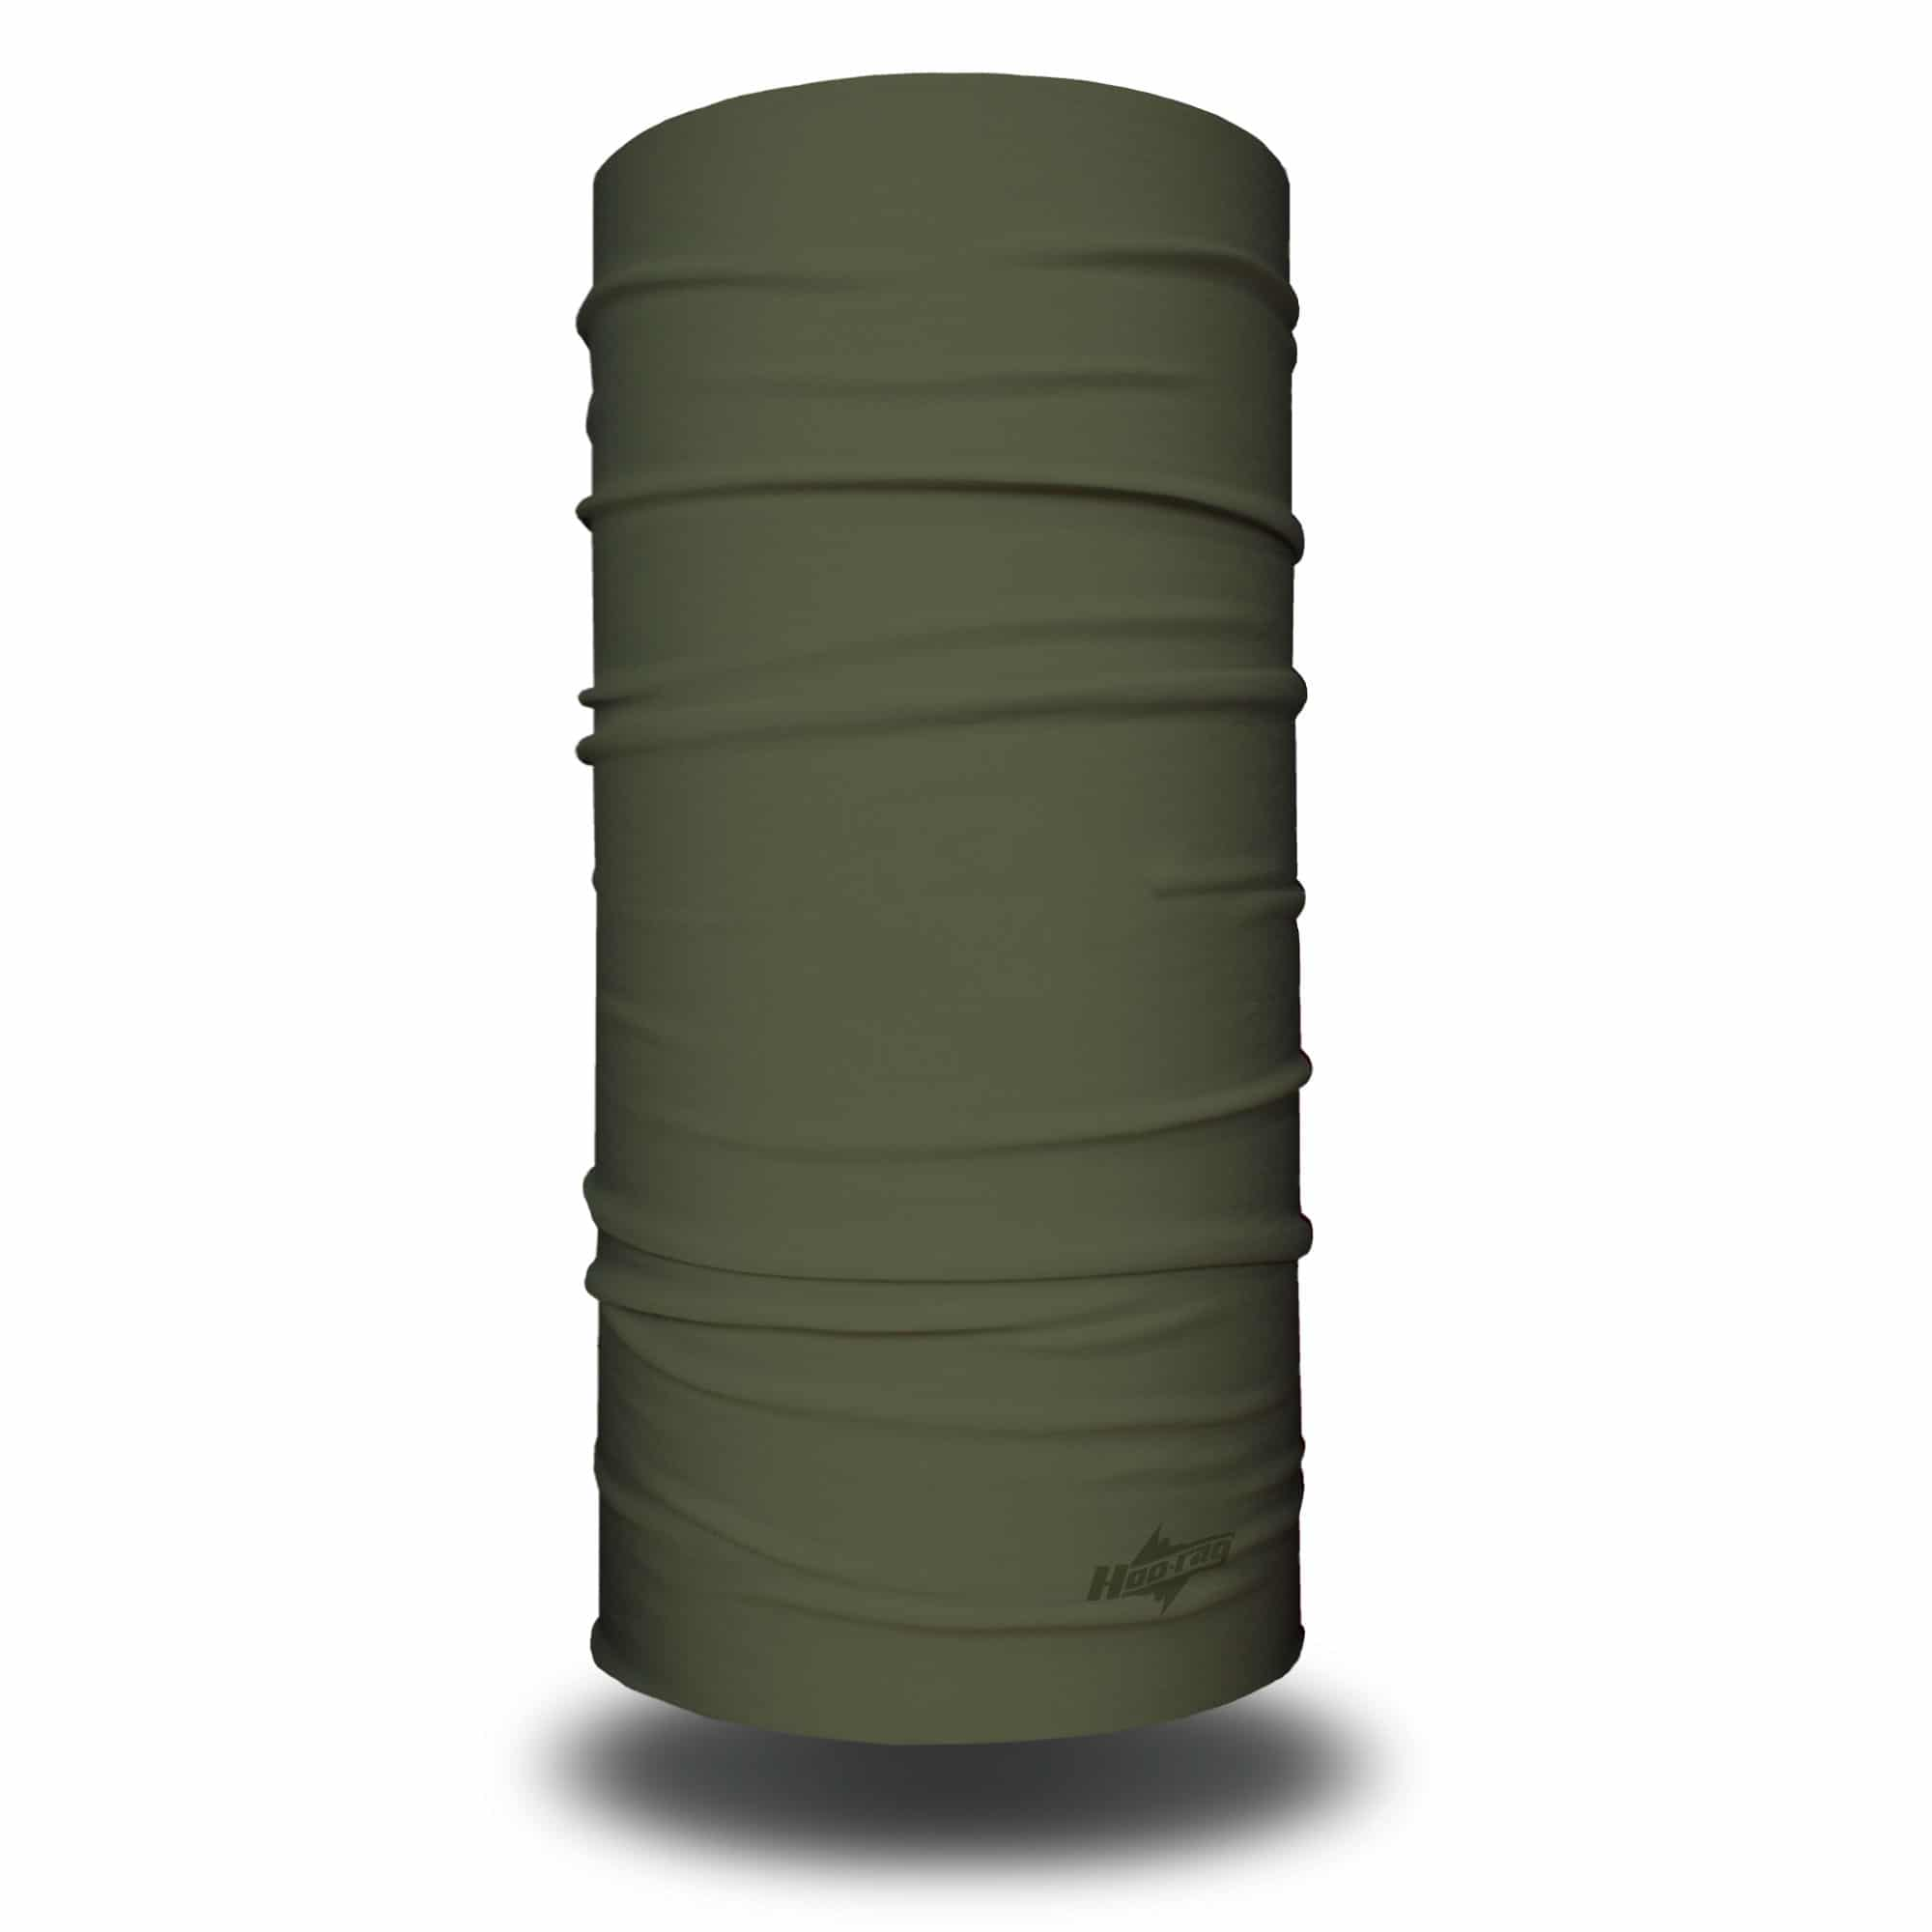 Tactical OD Green Bandana | Bandanas by Hoo-rag, just $15.95